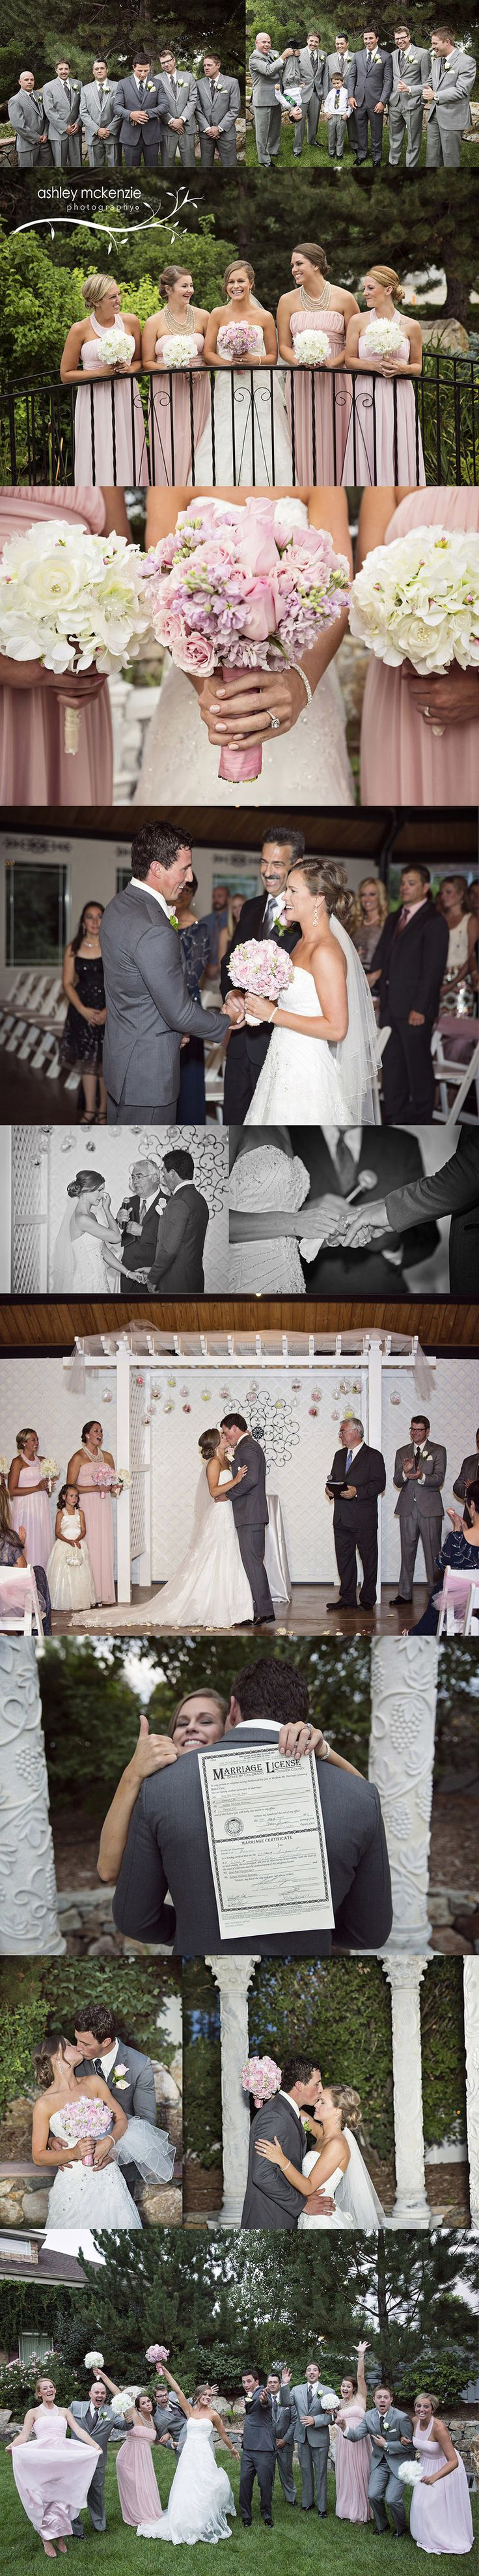 Wedding Photography by Ashley McKenzie Photography at Stonebrook Manor in Thornton, CO